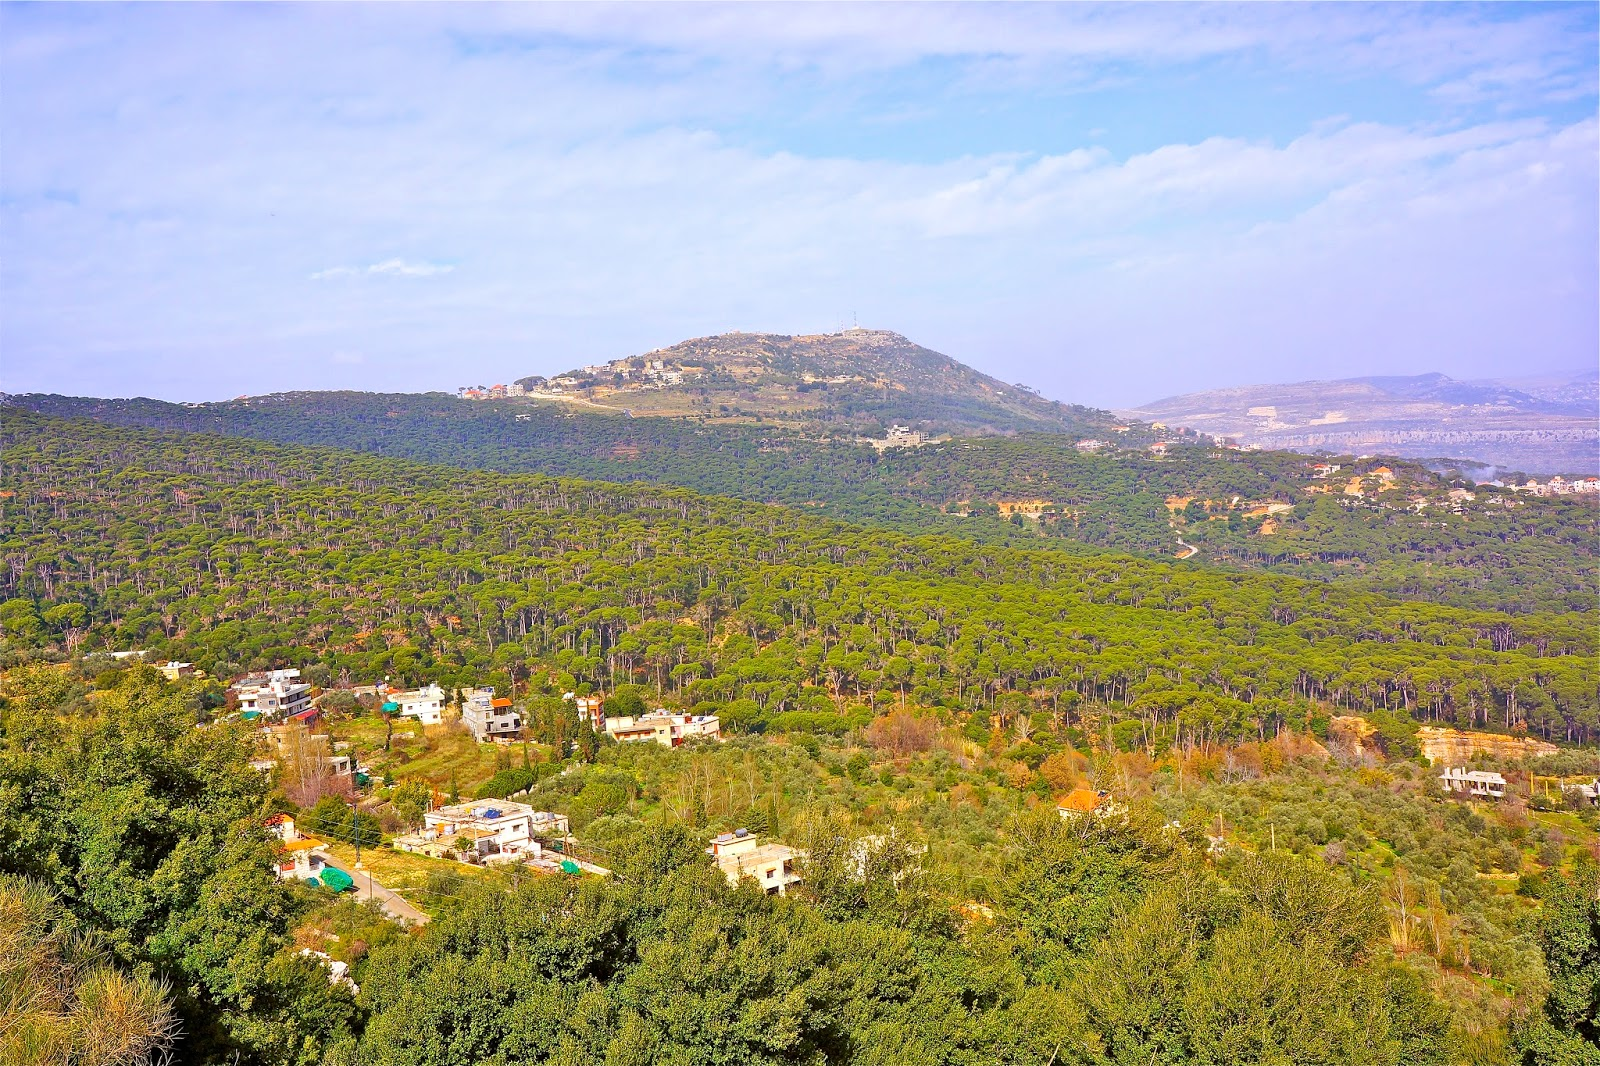 Picture of the mountains in the Jezzine area of South Lebanon.